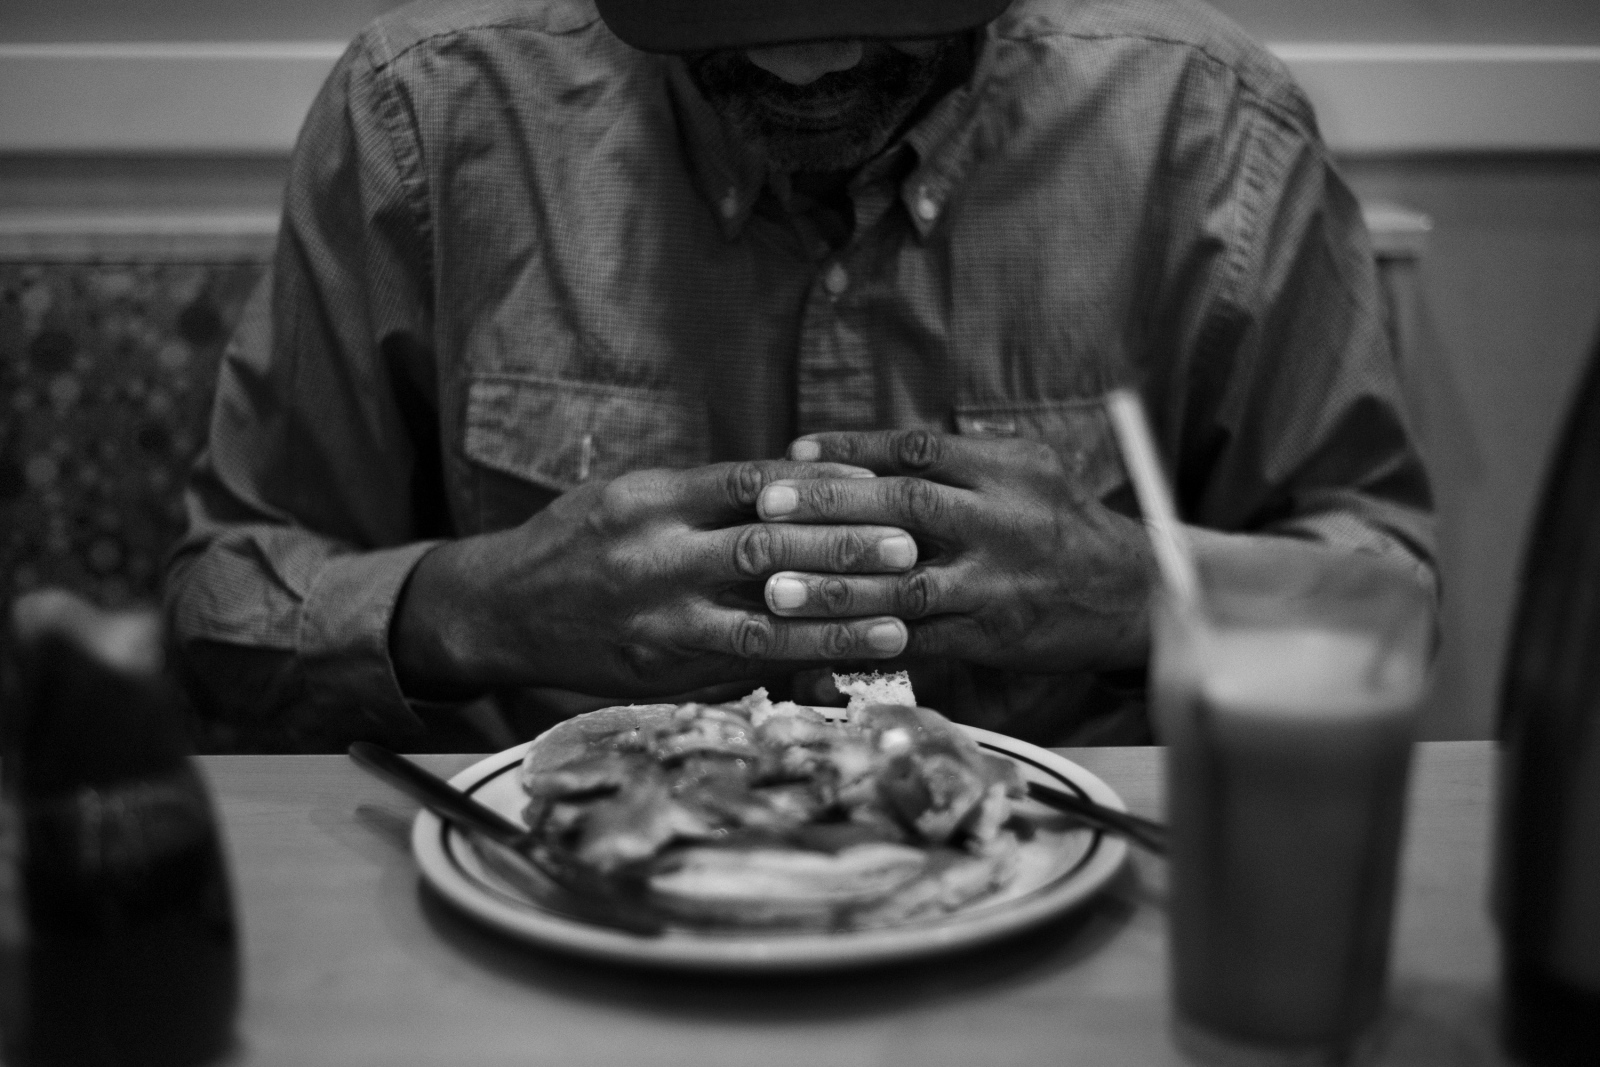 After various days without eating, Alvin prays in front of his breakfast on a restaurant near his home in downtown Brooklyn, because of his imprisonment he lost his VA benefits. September 7th 2016.